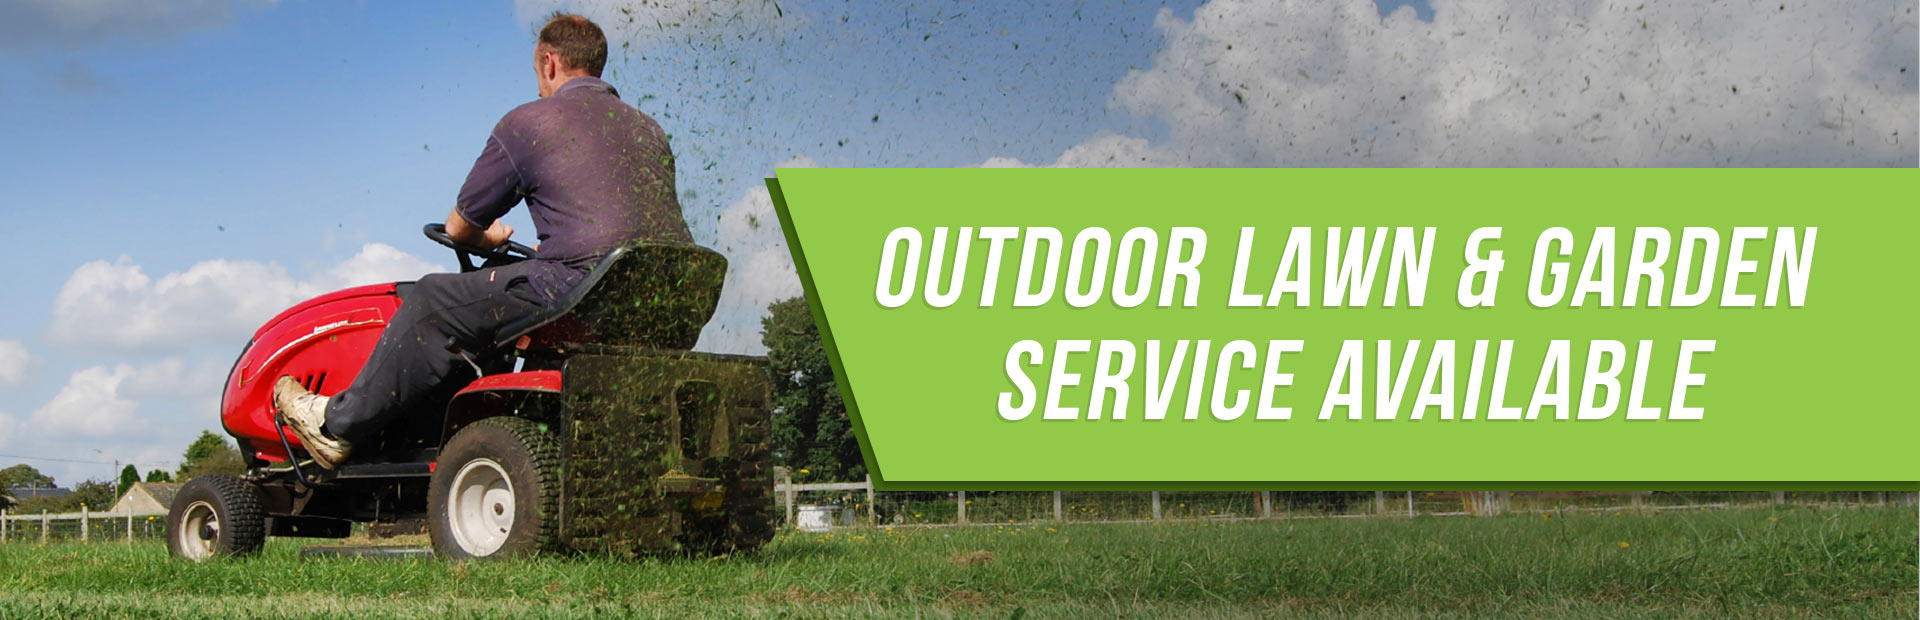 Awesome Outdoor Lawn And Garden Is Service Available!